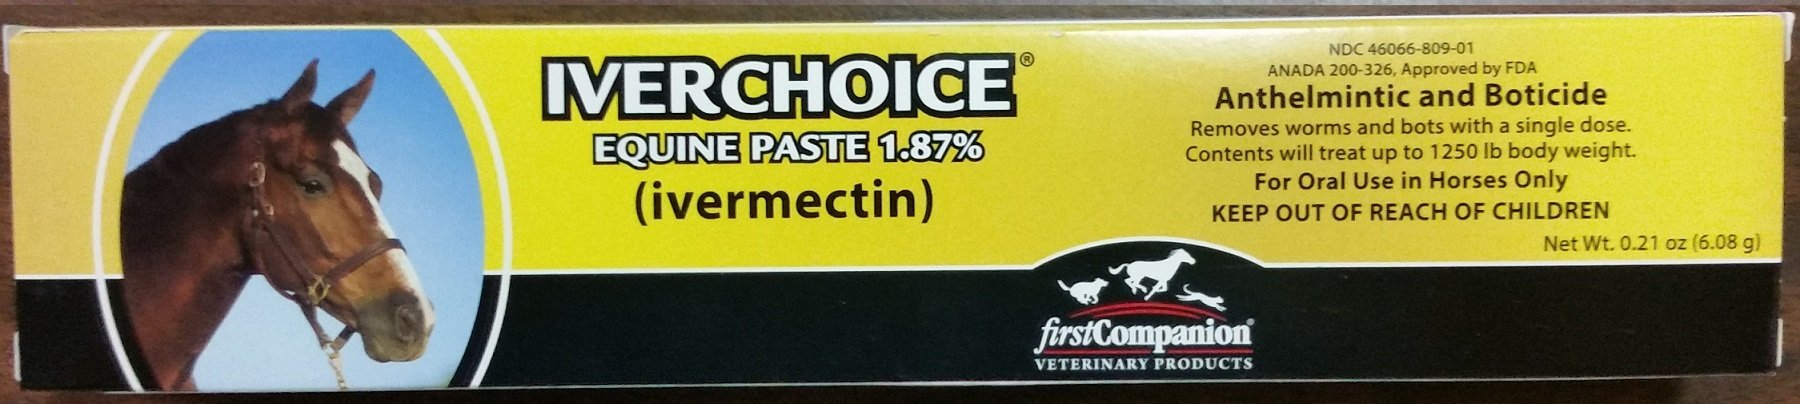 Ivermectin Paste 1.87% HORSE Wormer ALL SIZES (2 Tubes) by First Companion